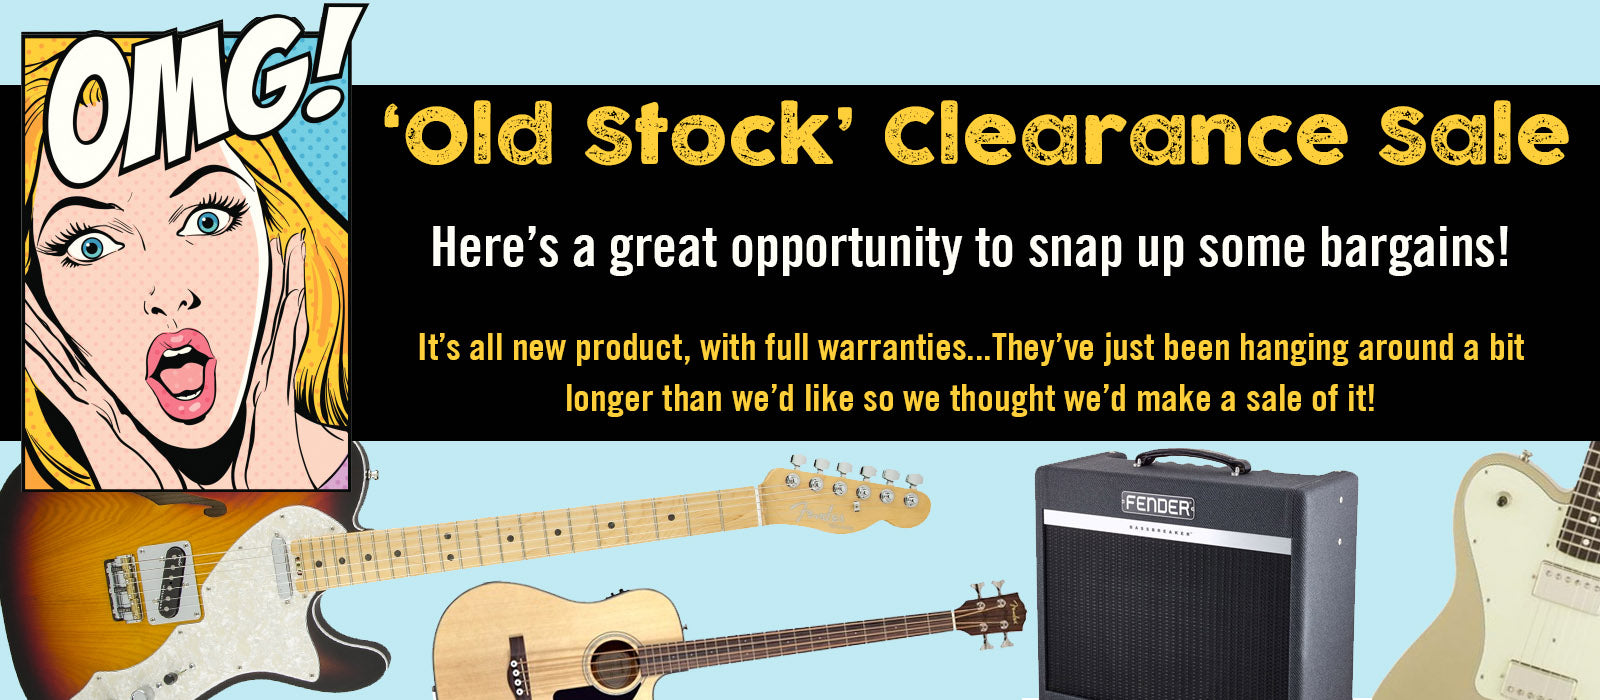 'Old Stock' Clearance Sale